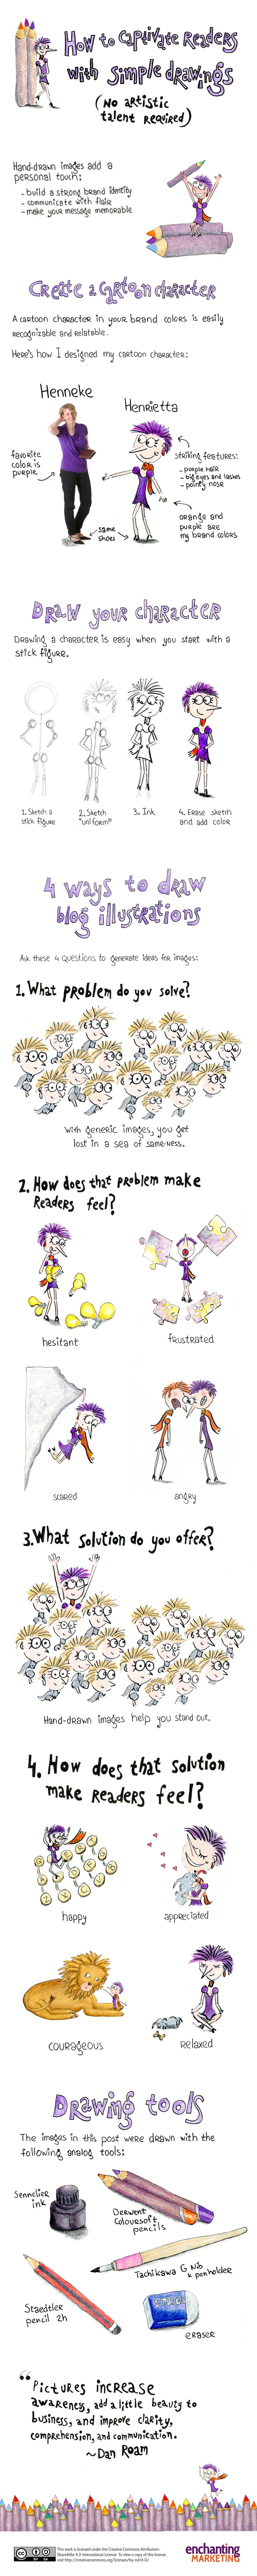 How to Design a Character for Your Brand